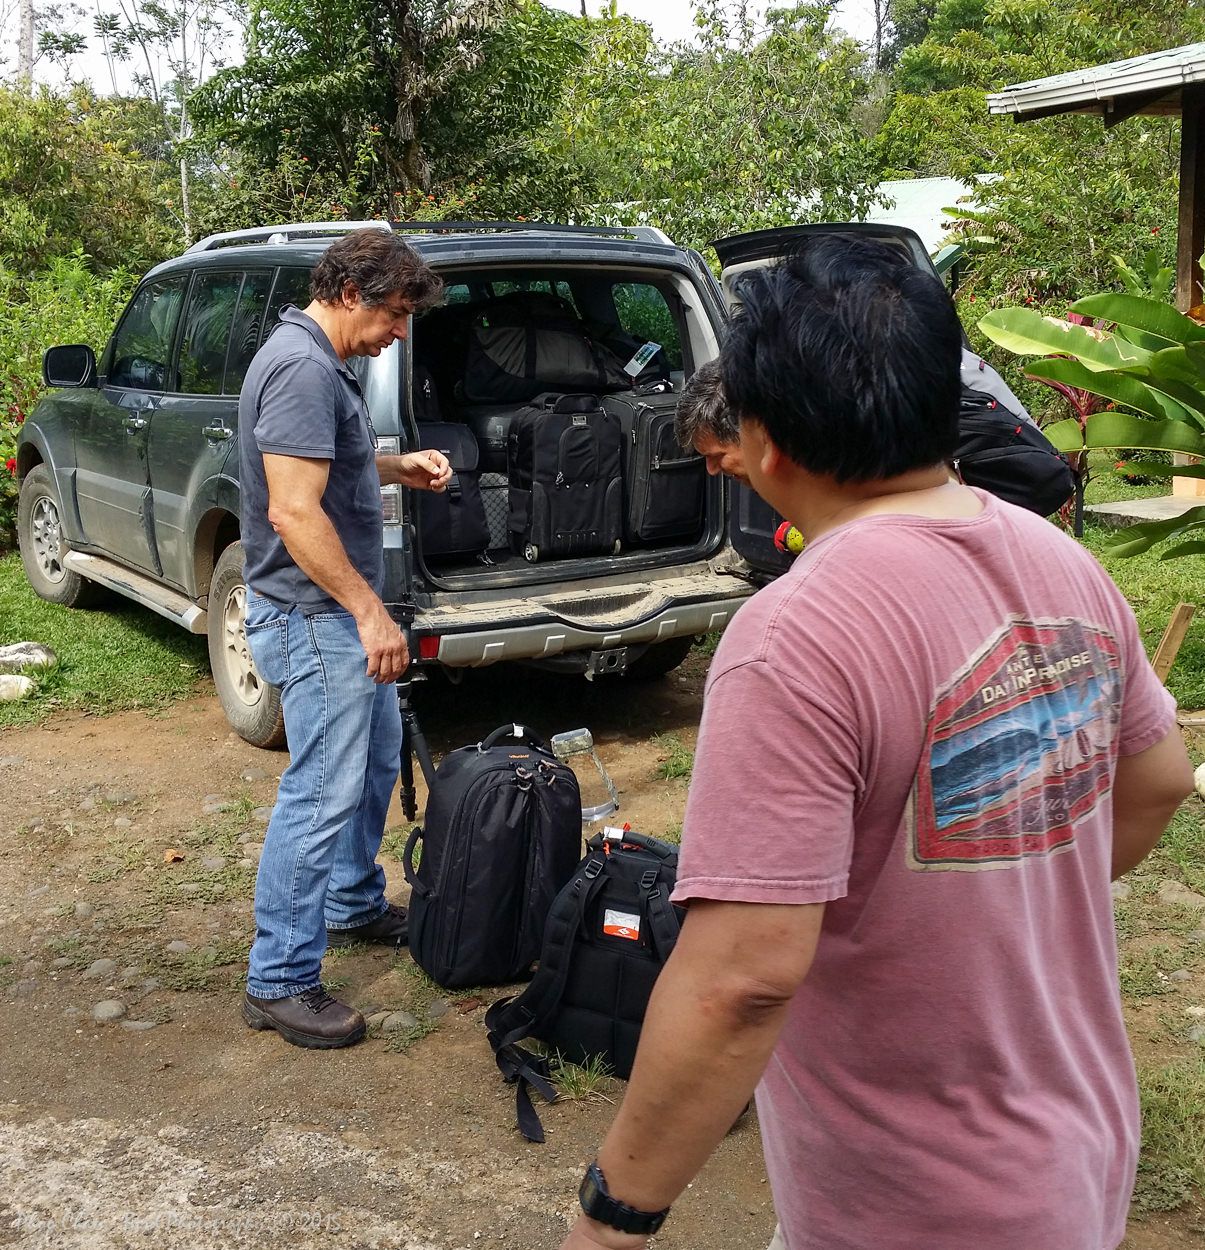 Loading up our SUV for our next destination..